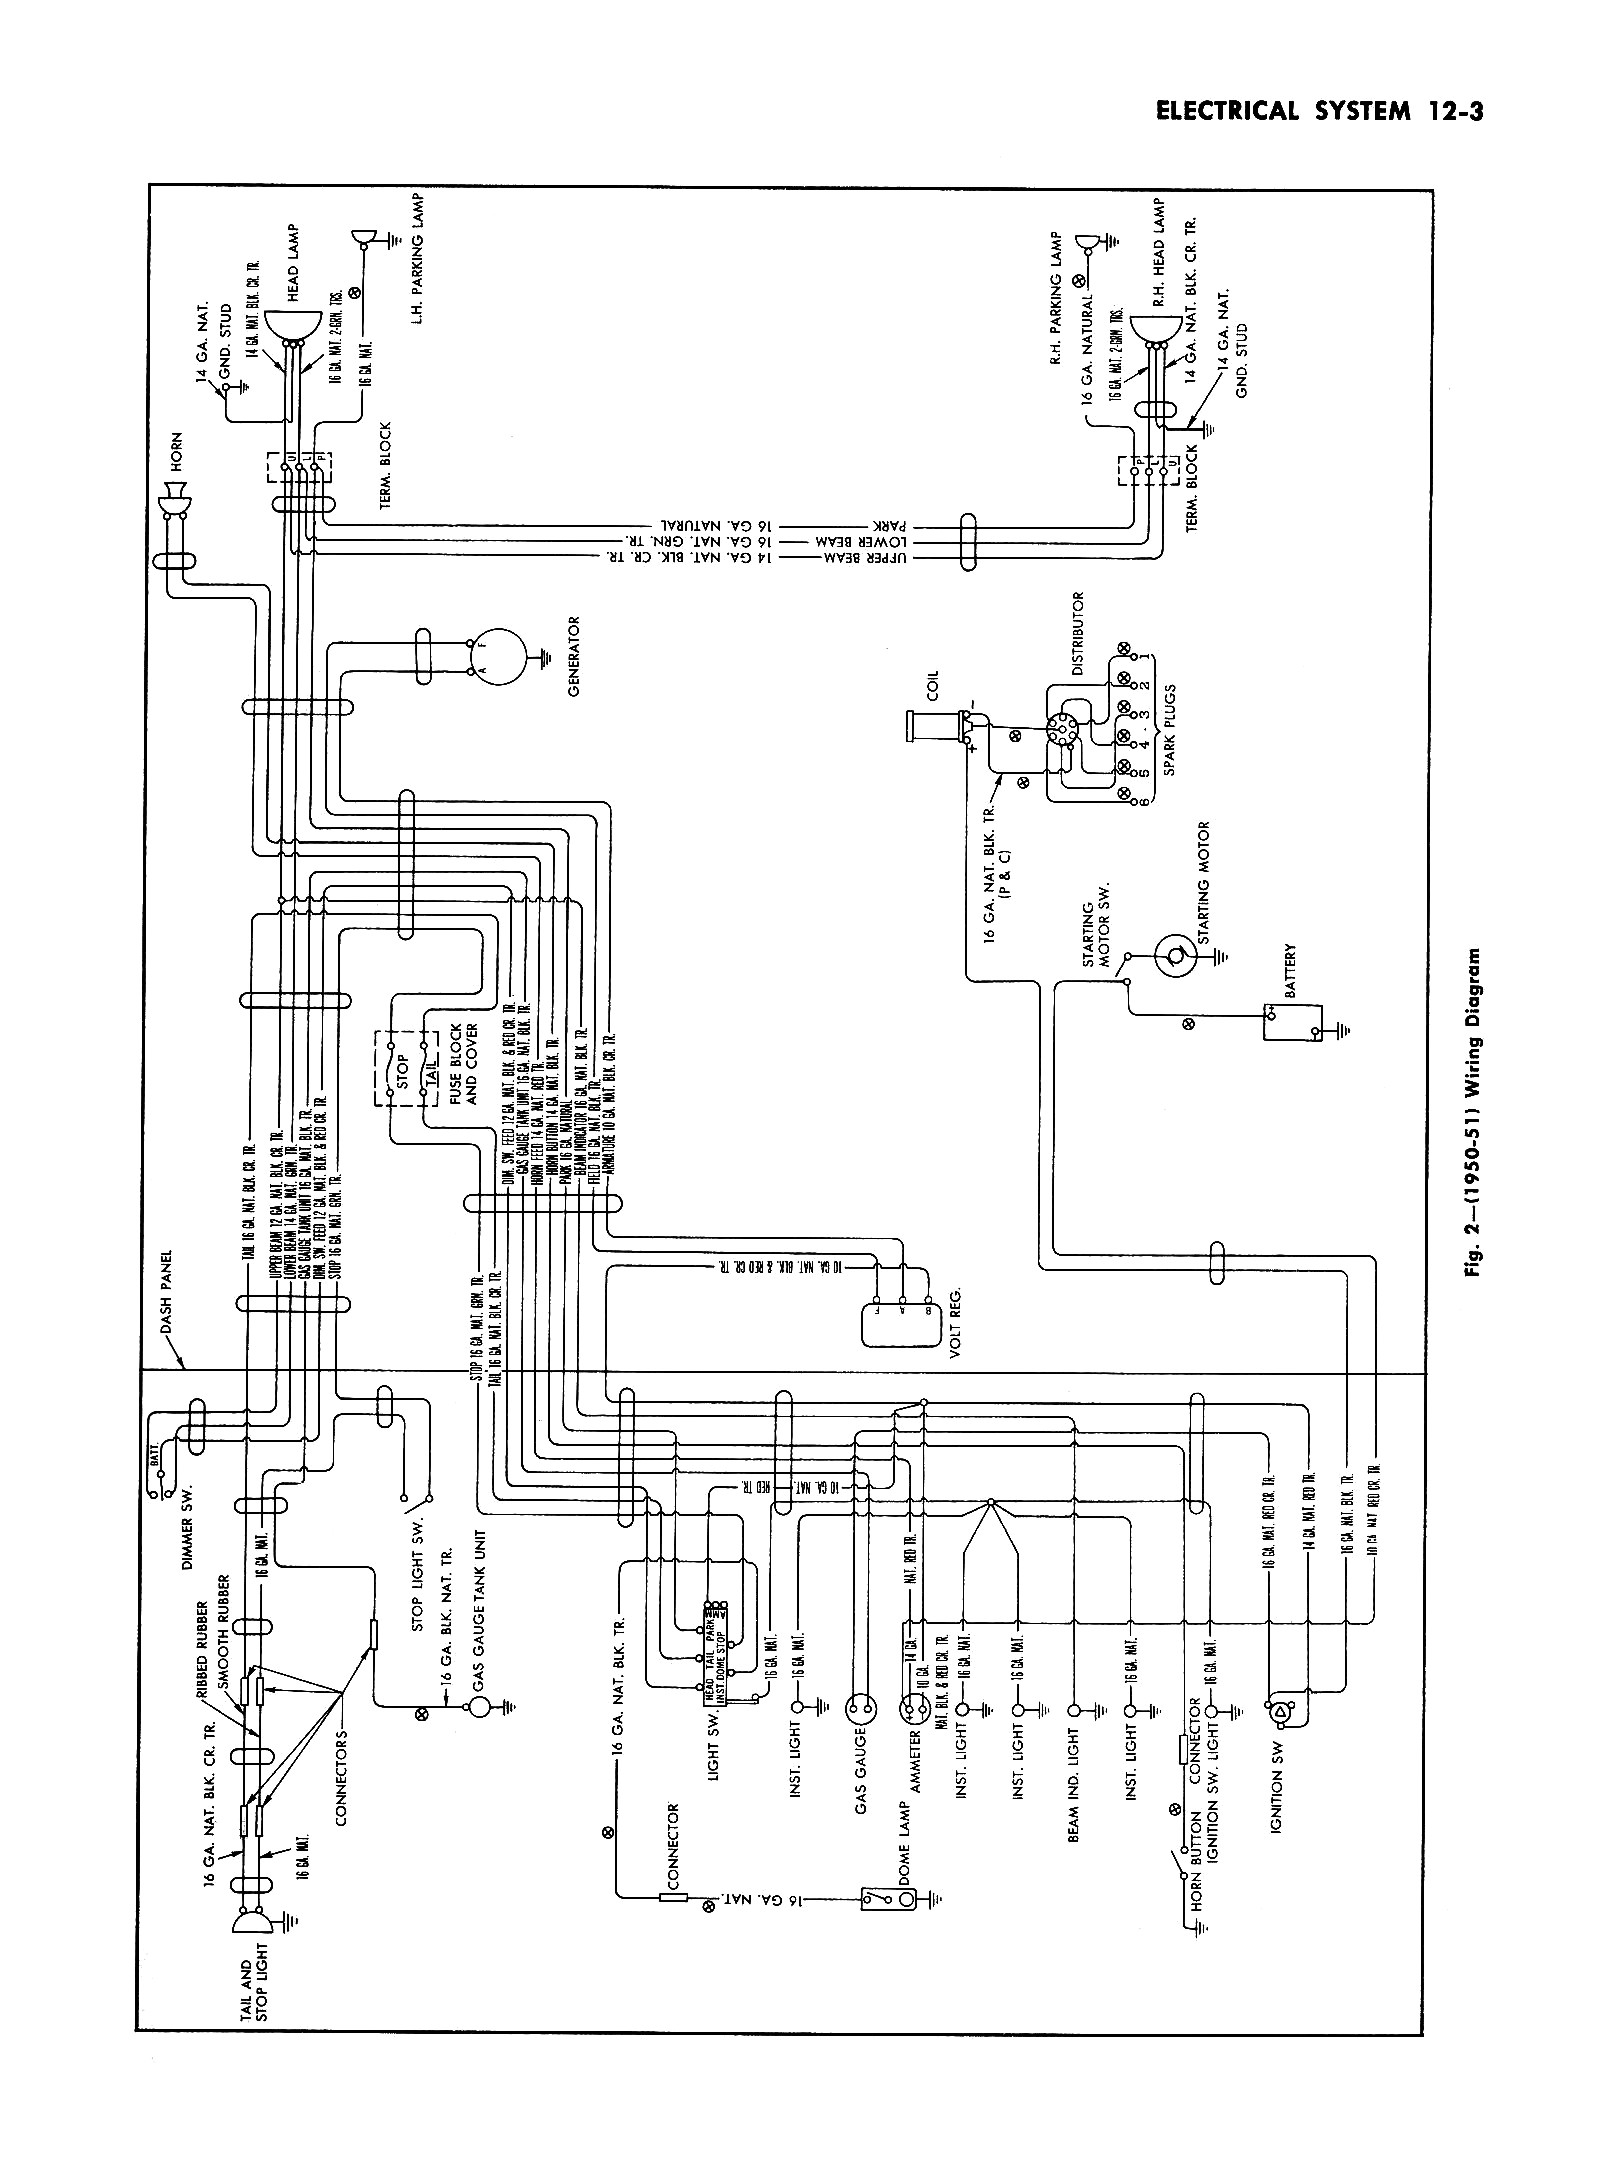 1950 Ford Headlight Switch Diagram on 1958 chevy pickup wiring diagrams